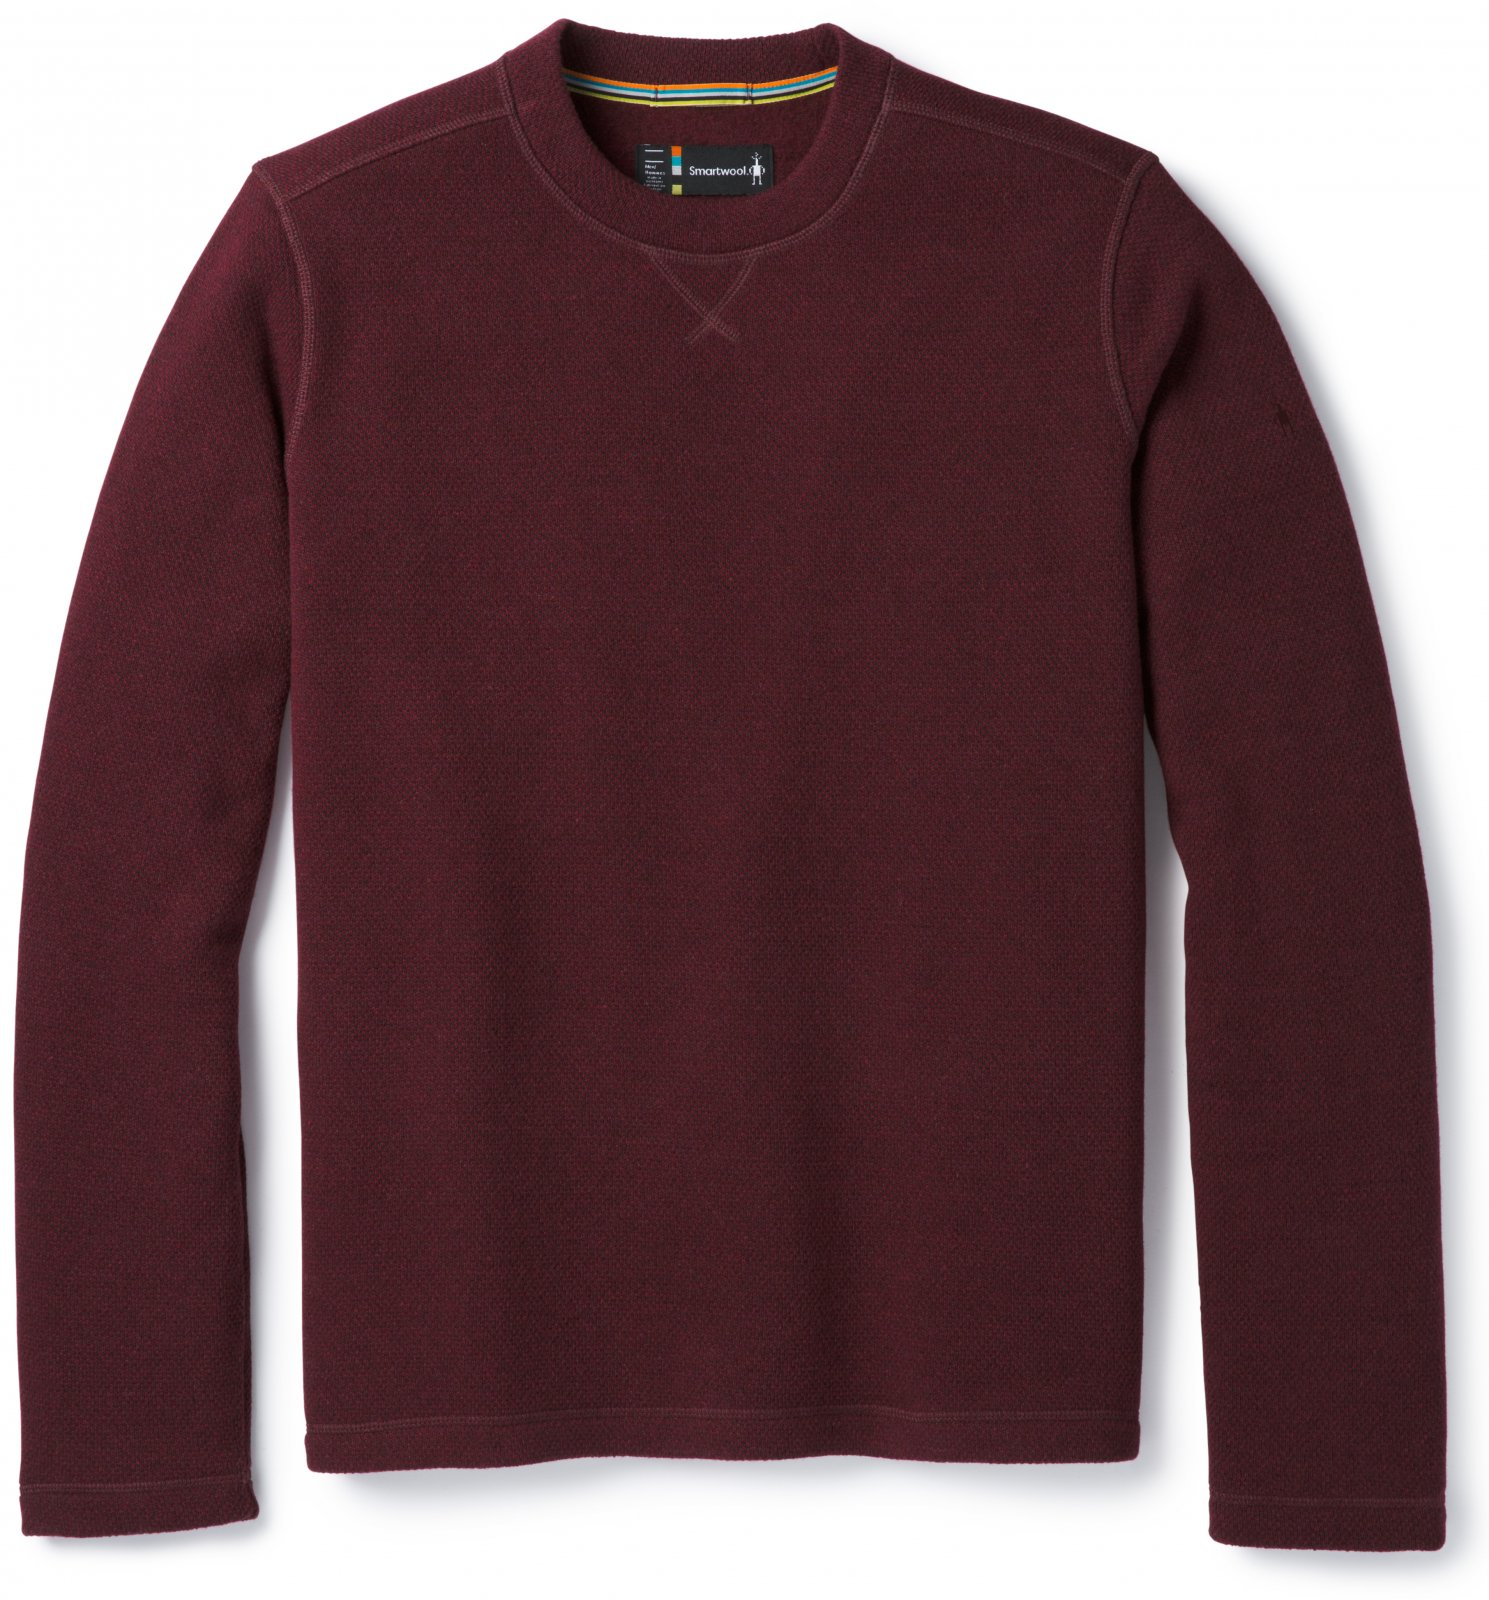 Smartwool Men's Hudson Trail Fleece Crew Sweater